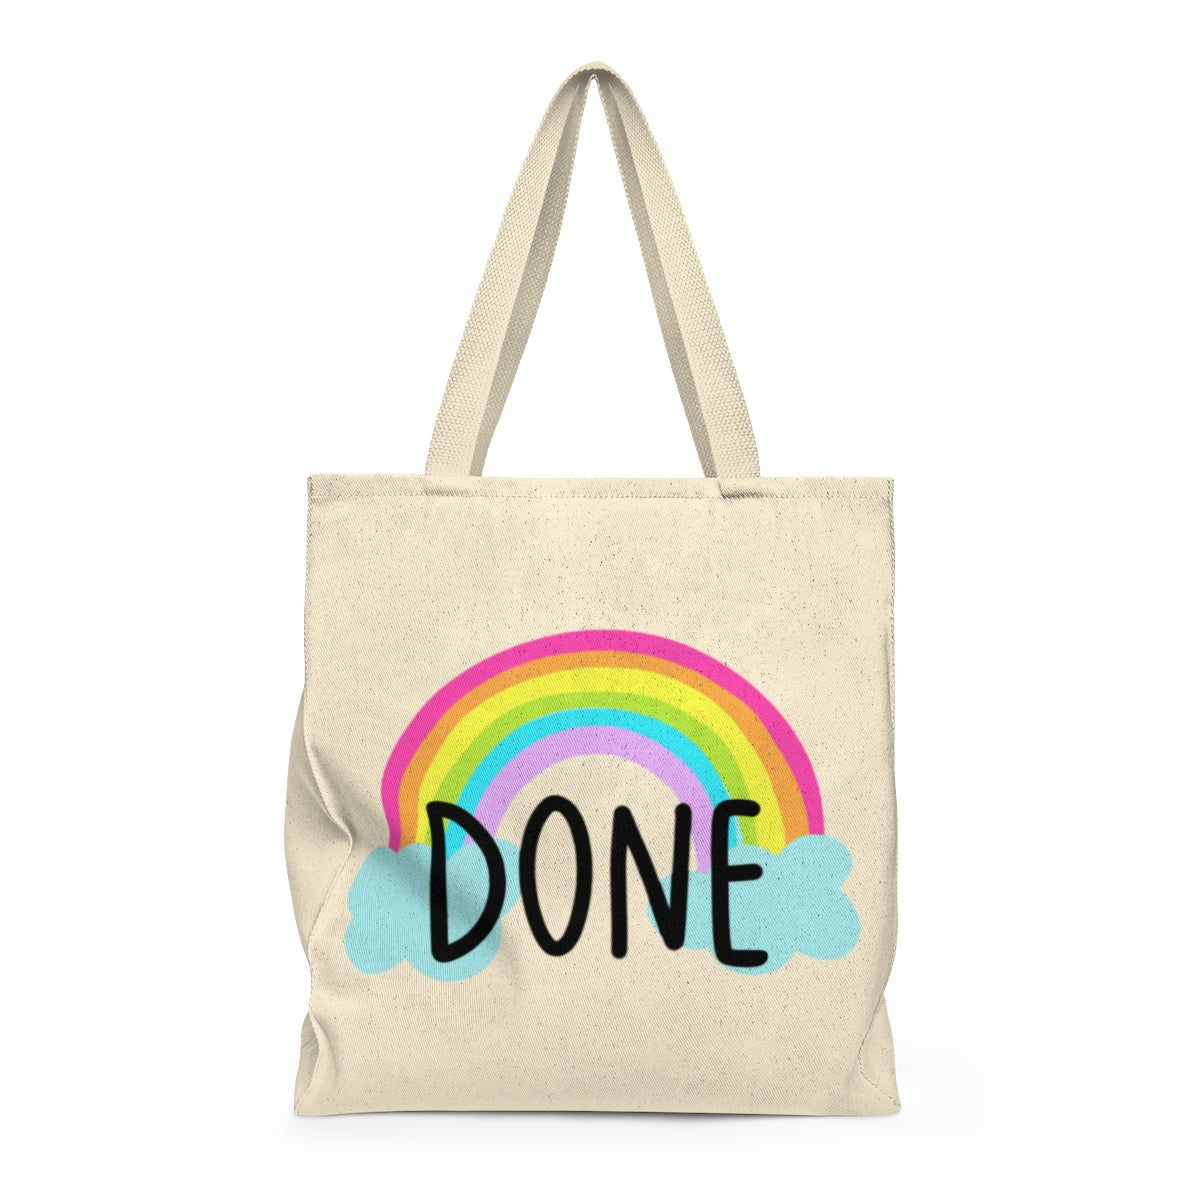 Done Tote